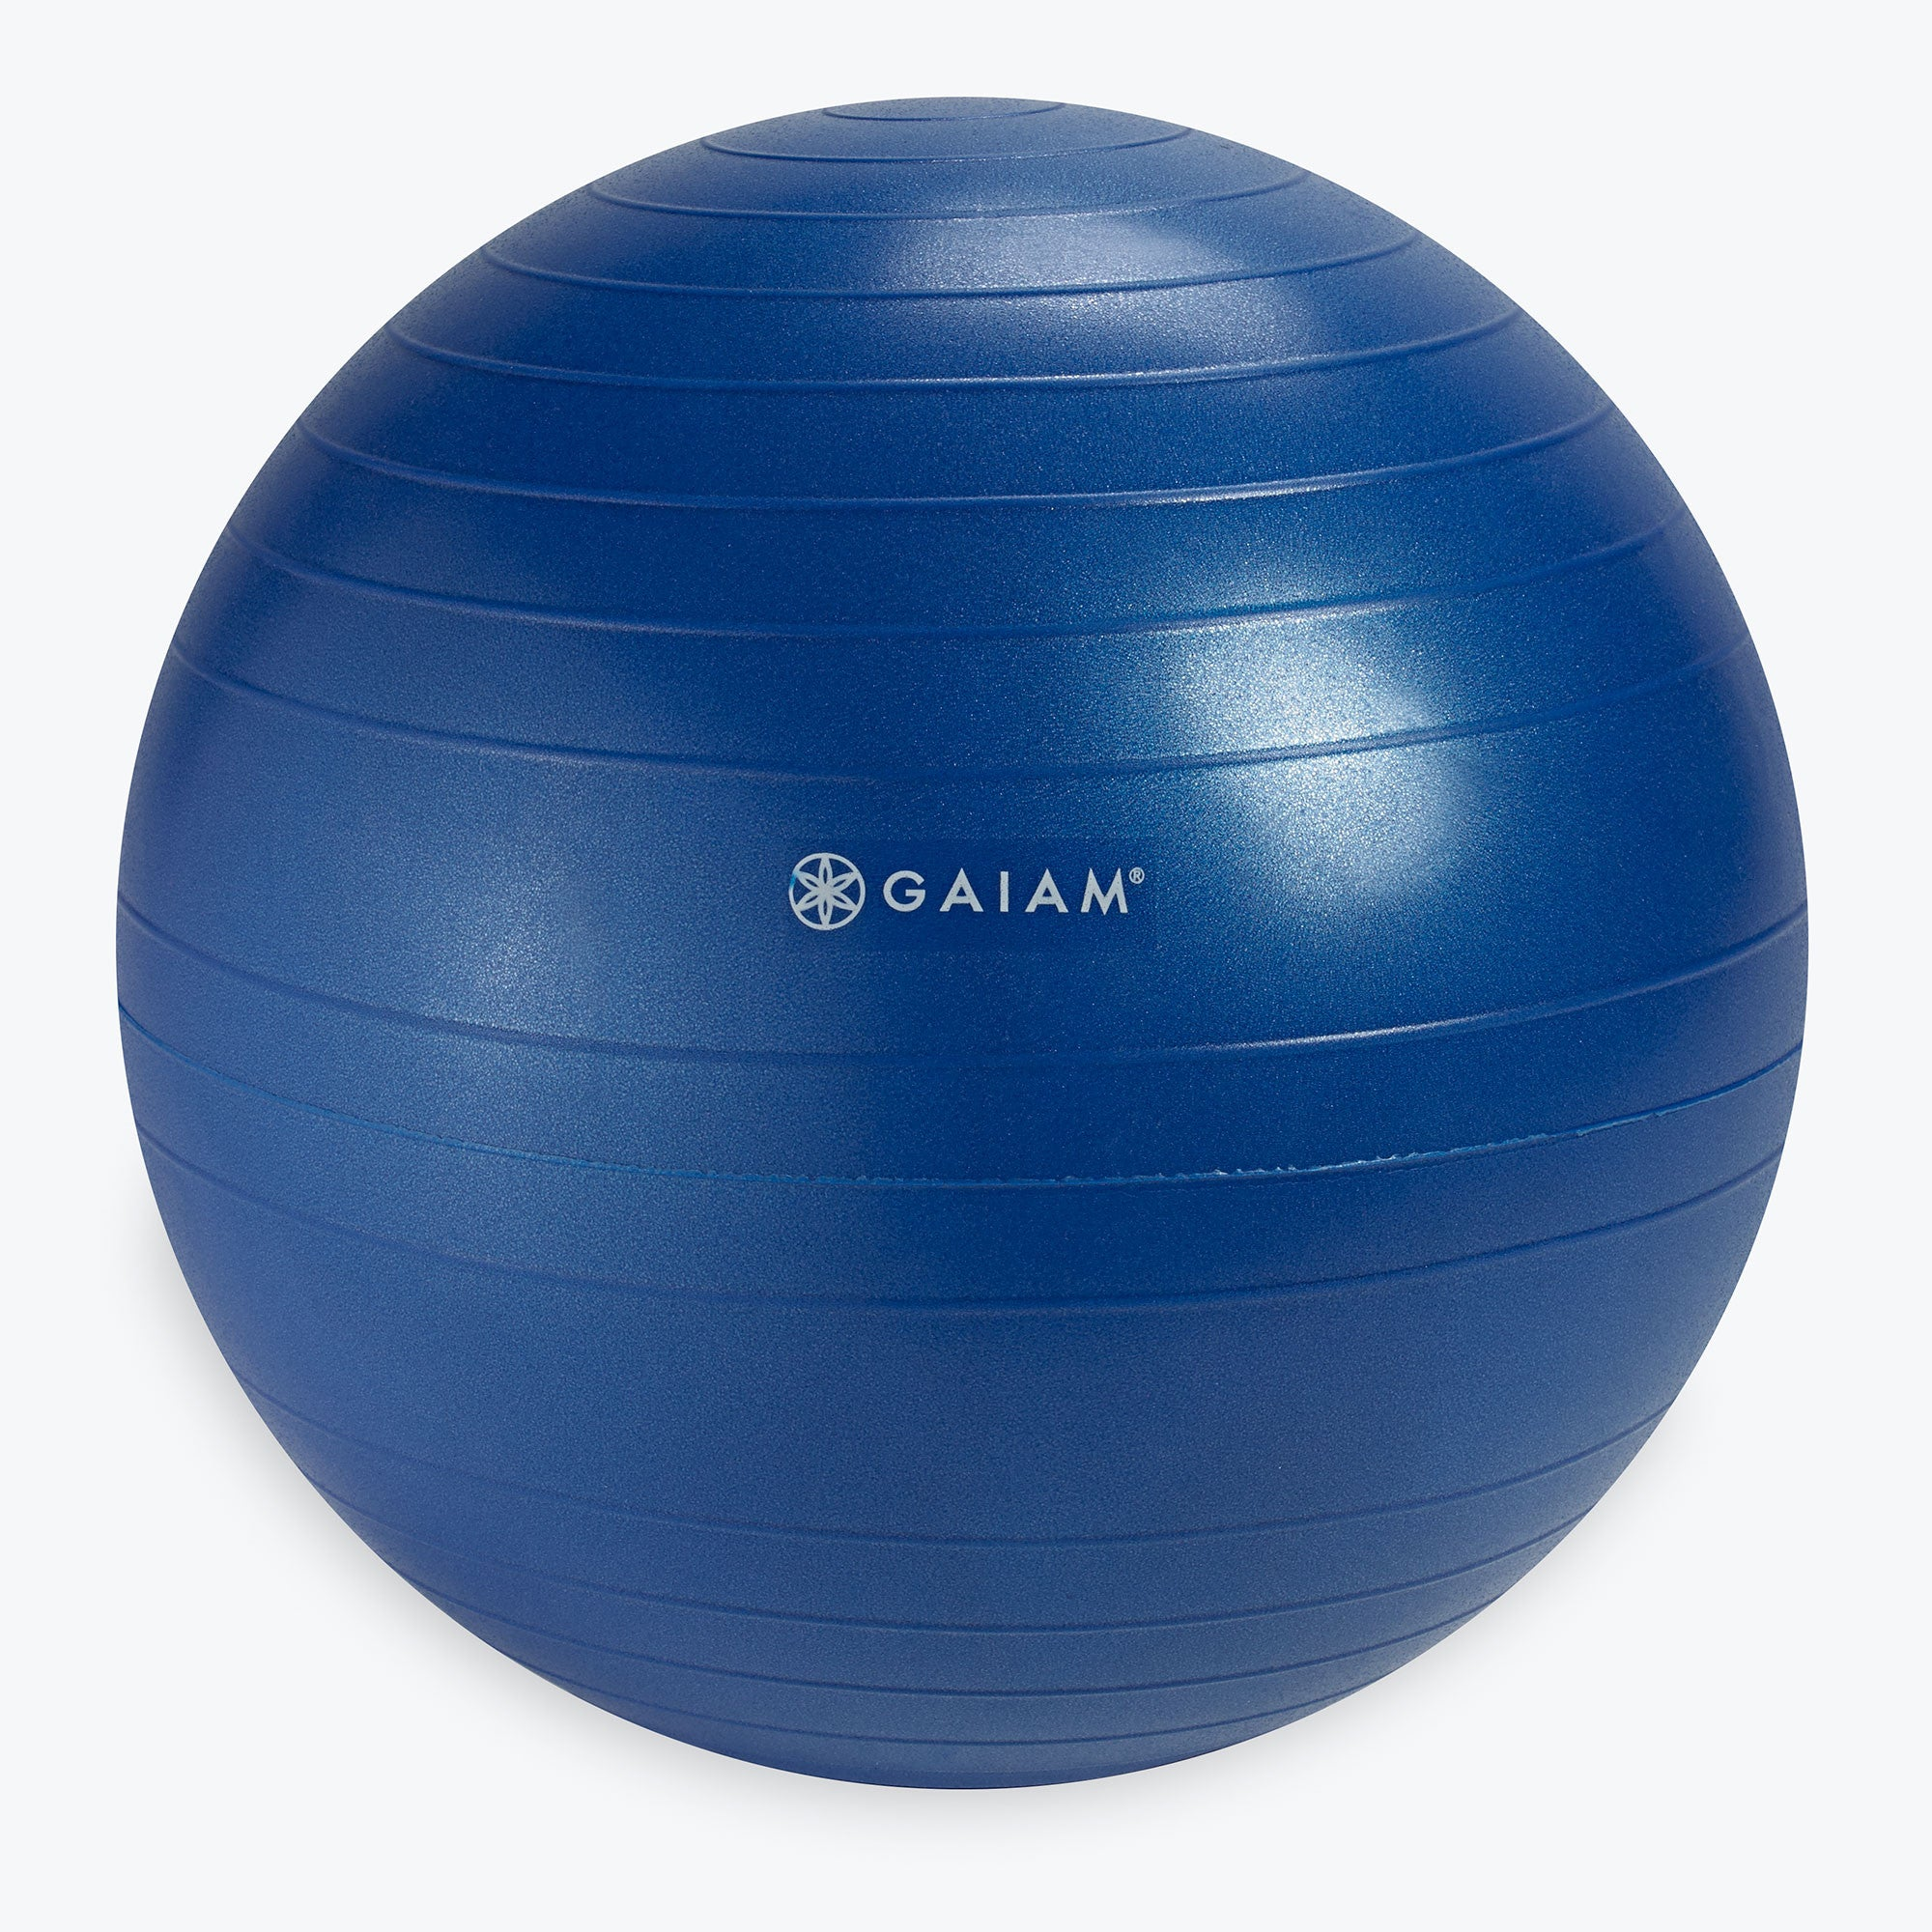 ... Blue Extra Ball for the Classic Balance Ball® Chair ...  sc 1 st  Gaiam & Extra Ball for the Classic Balance Ball® Chair (52cm) - Gaiam